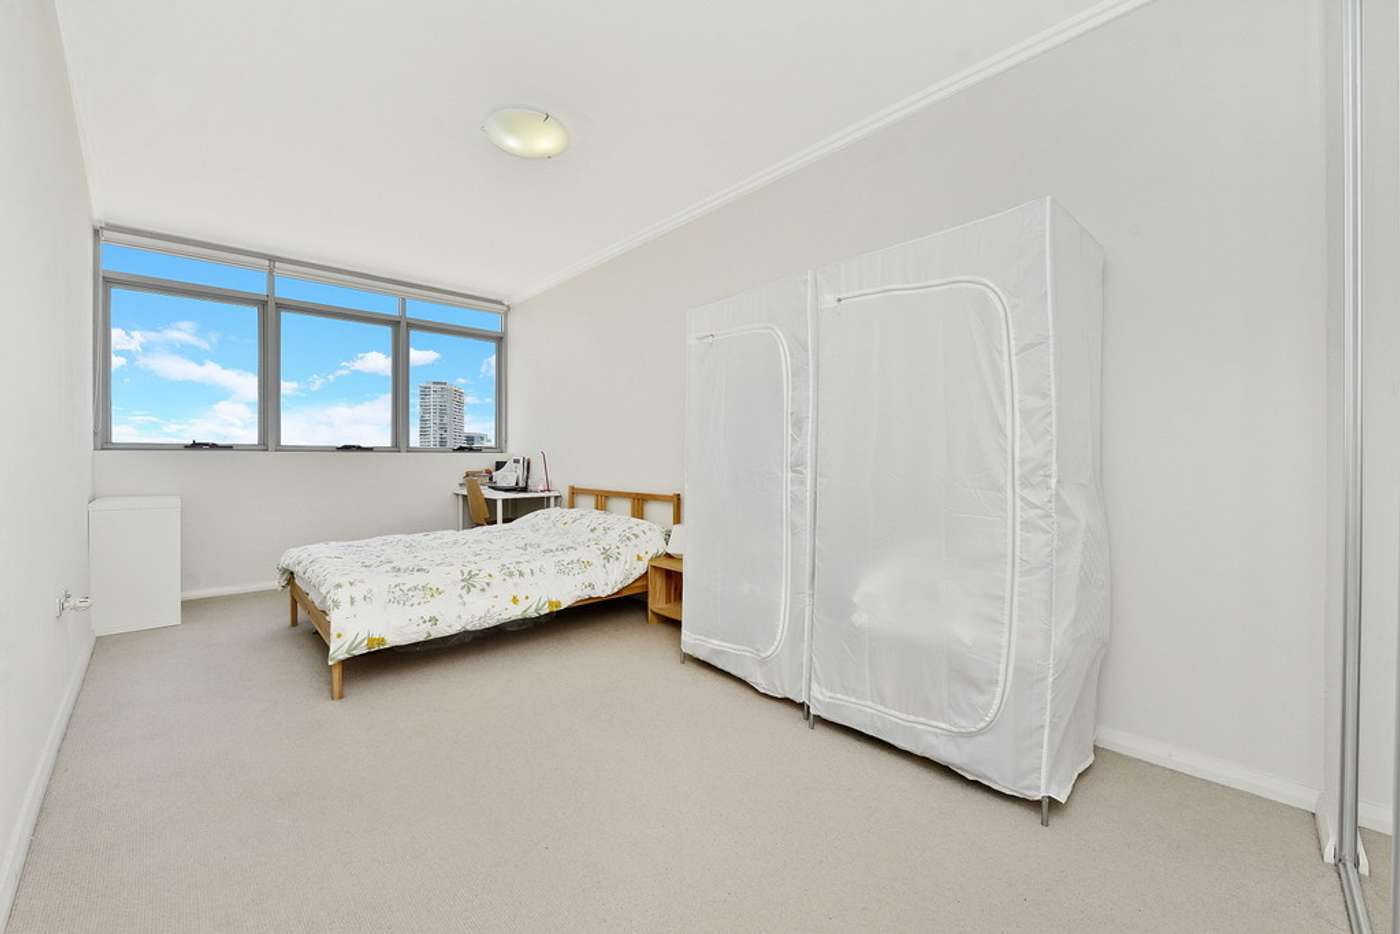 Sixth view of Homely apartment listing, 67/38 Shoreline Drive, Rhodes NSW 2138